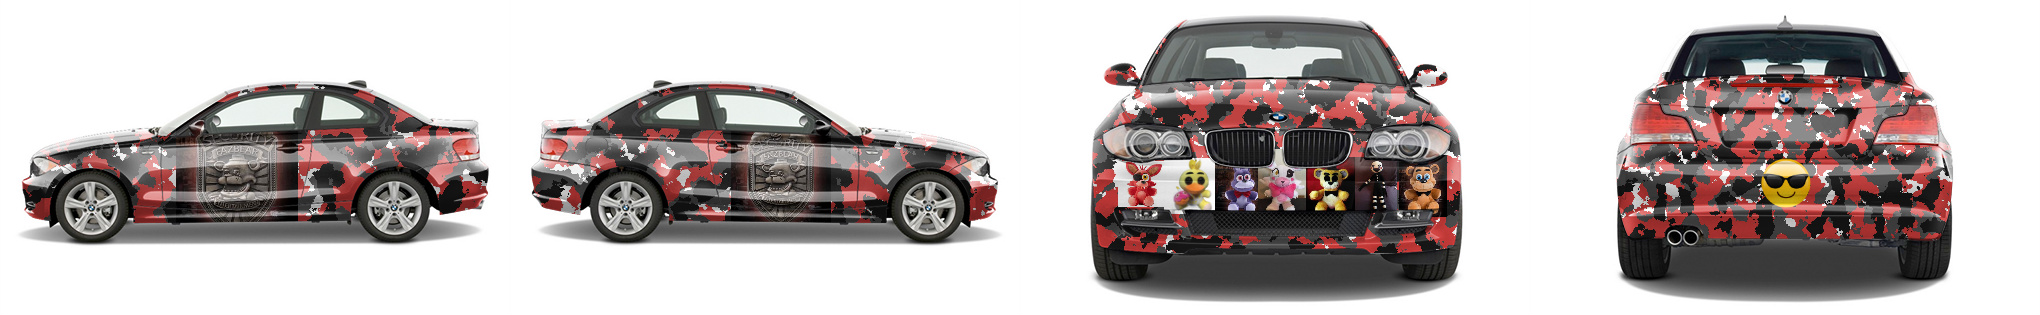 Sports Coupe Wrap Custom Design 22559 By New Designer